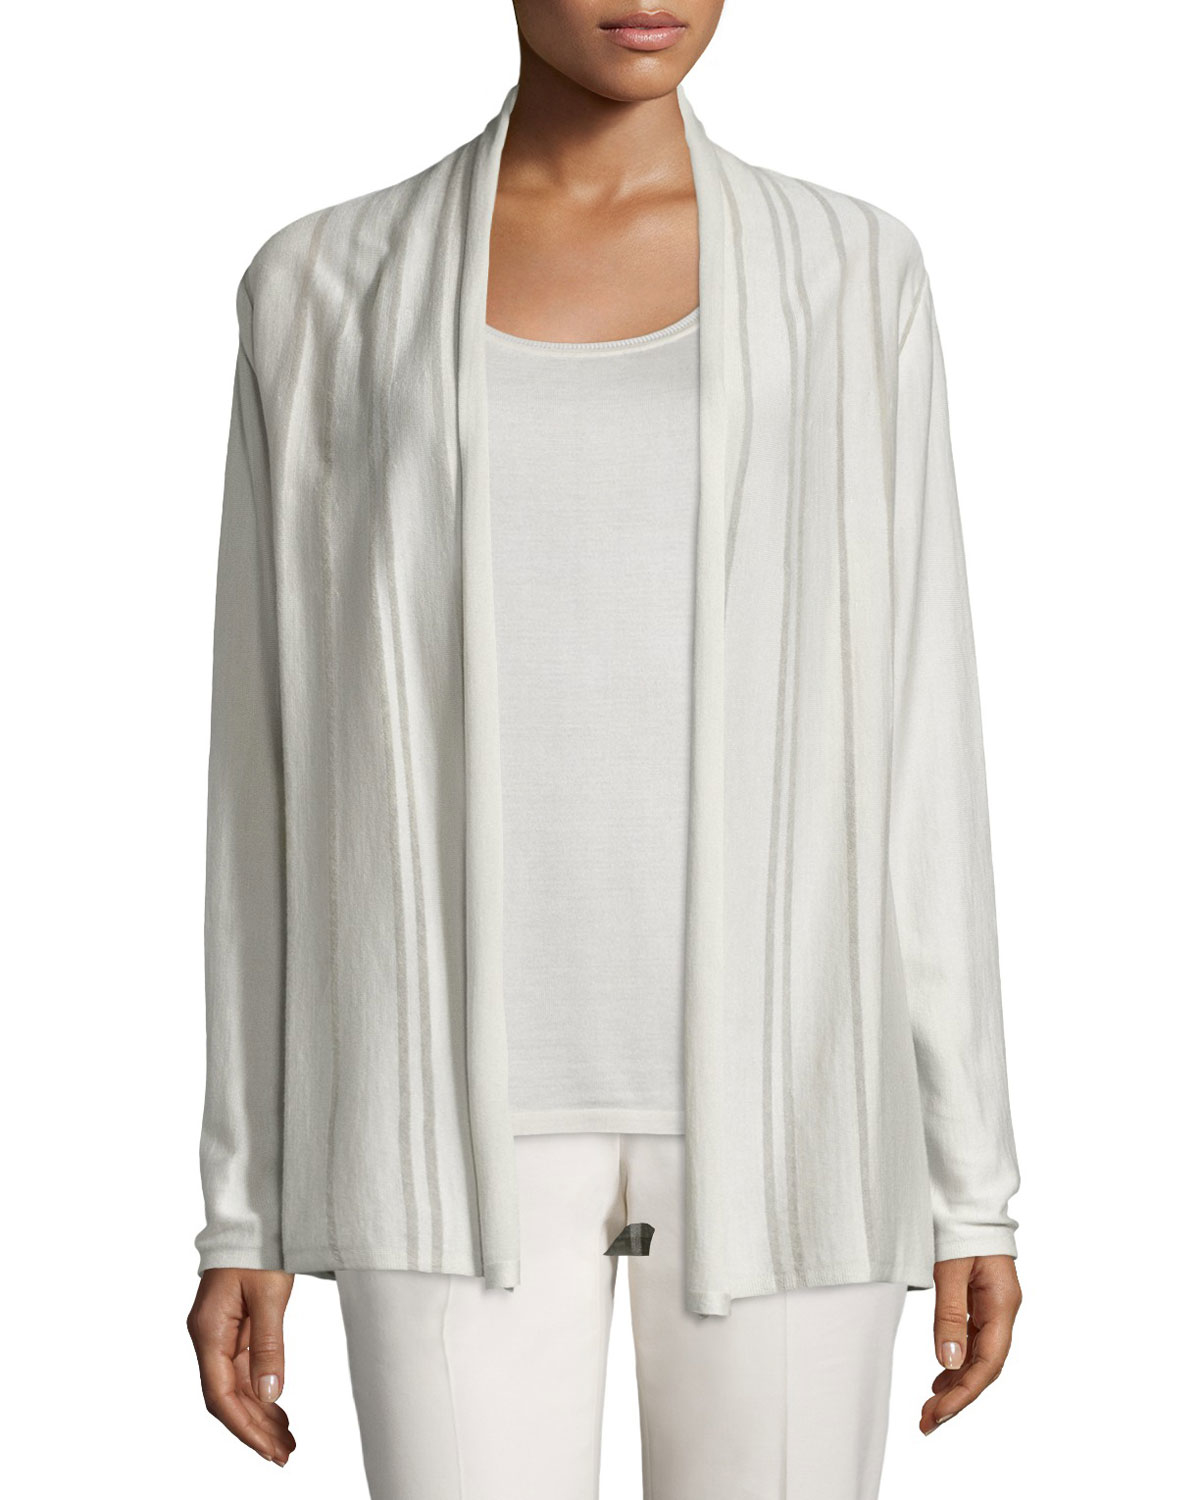 Lafayette 148 new york Sheer Striped Silk/cotton Cardigan | Lyst